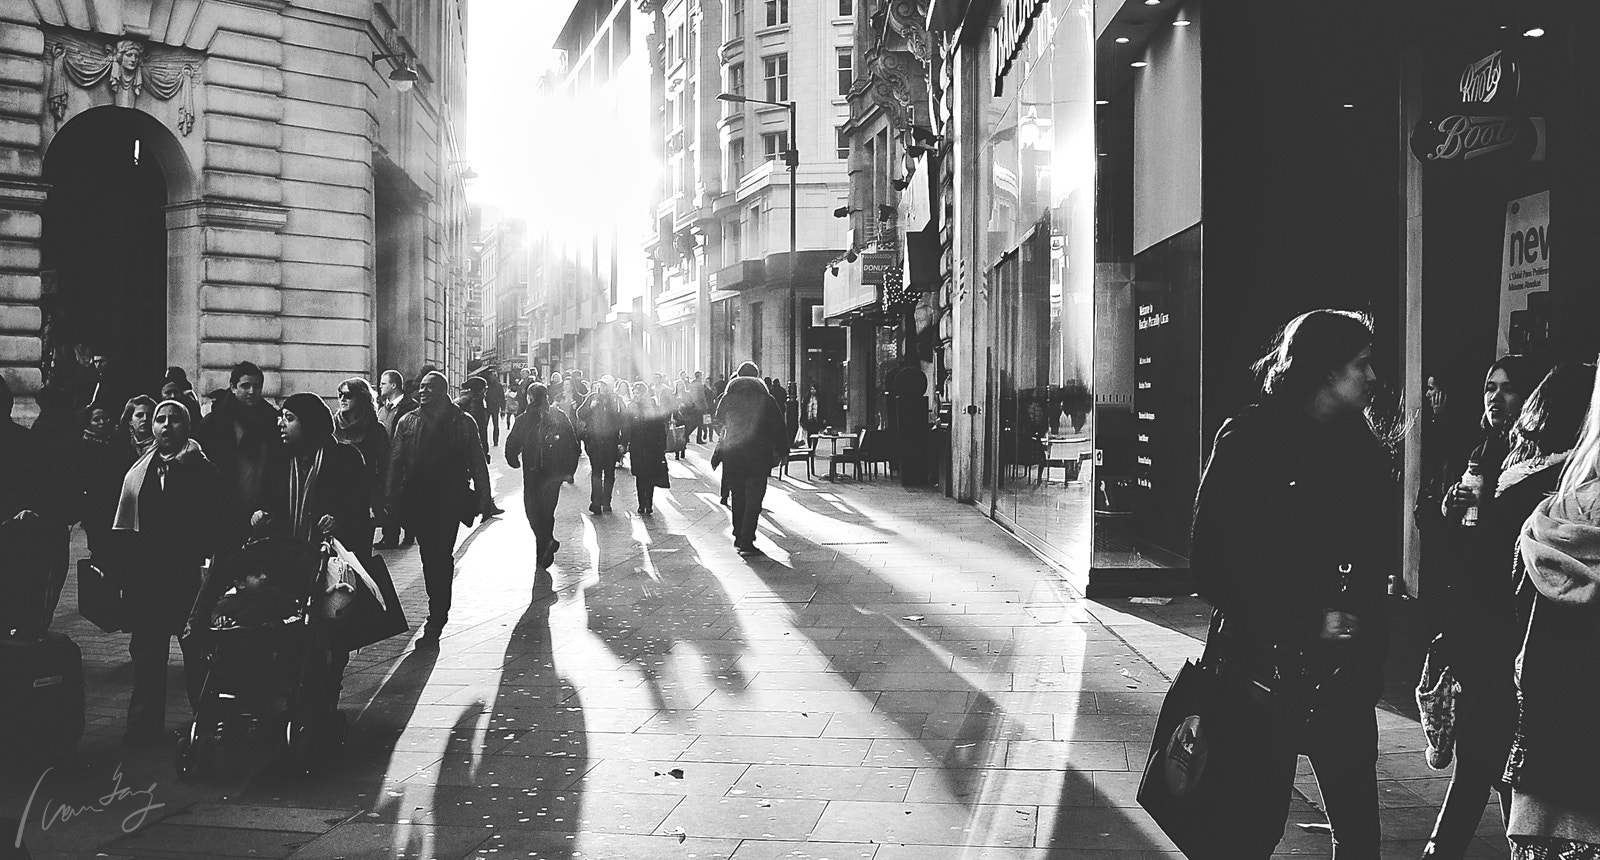 Photograph London Streets by Ivan Yang on 500px